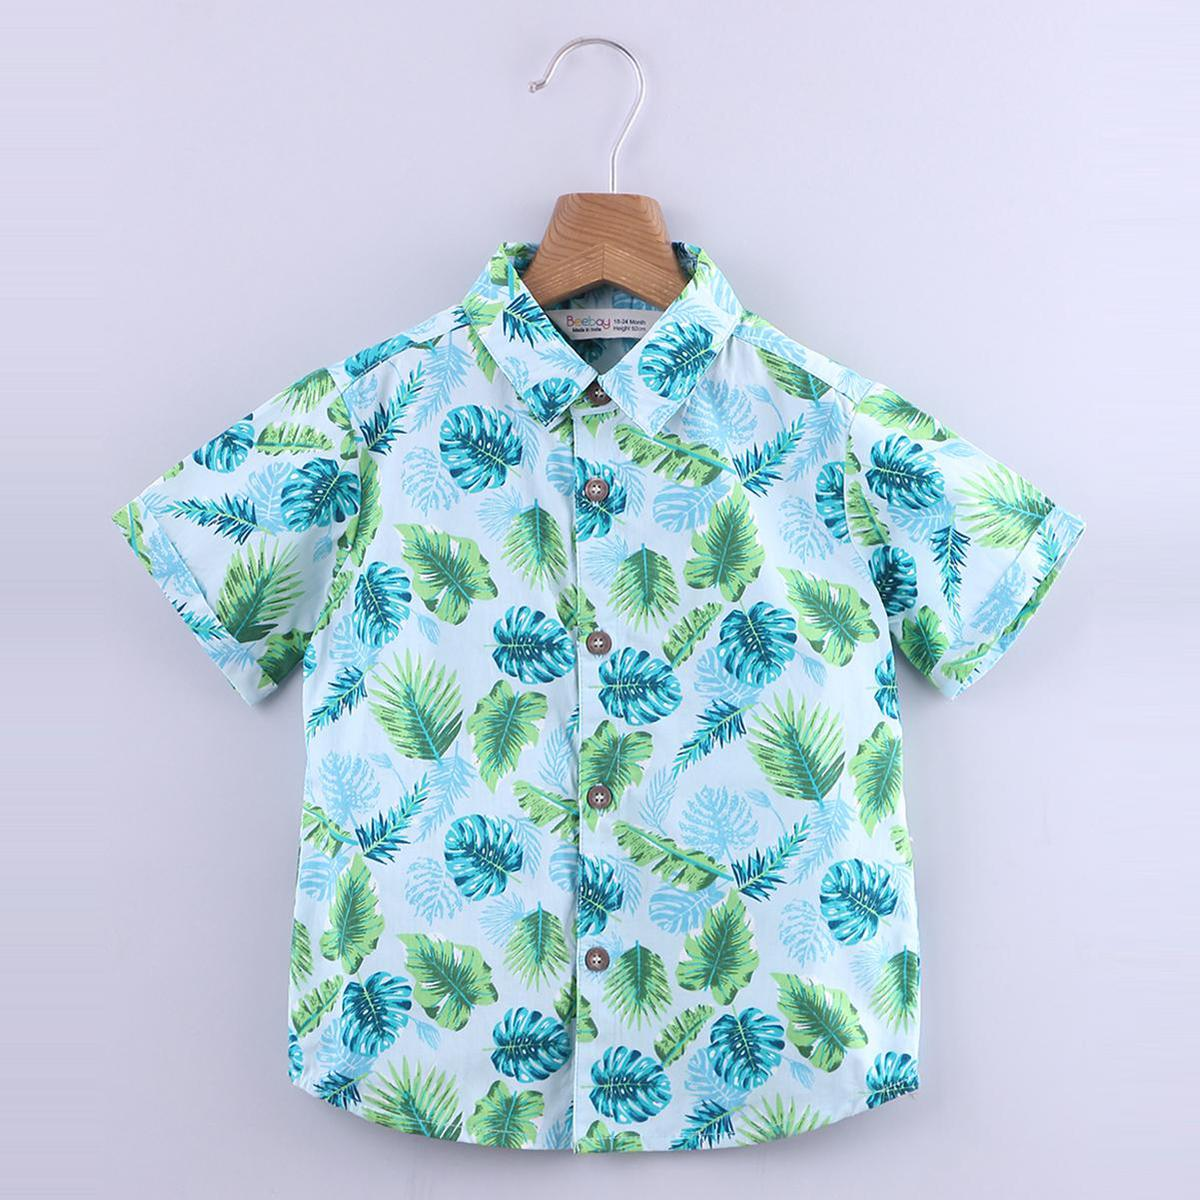 Beebay - Blue Colored Tropical Print Cotton Shirt For Boys